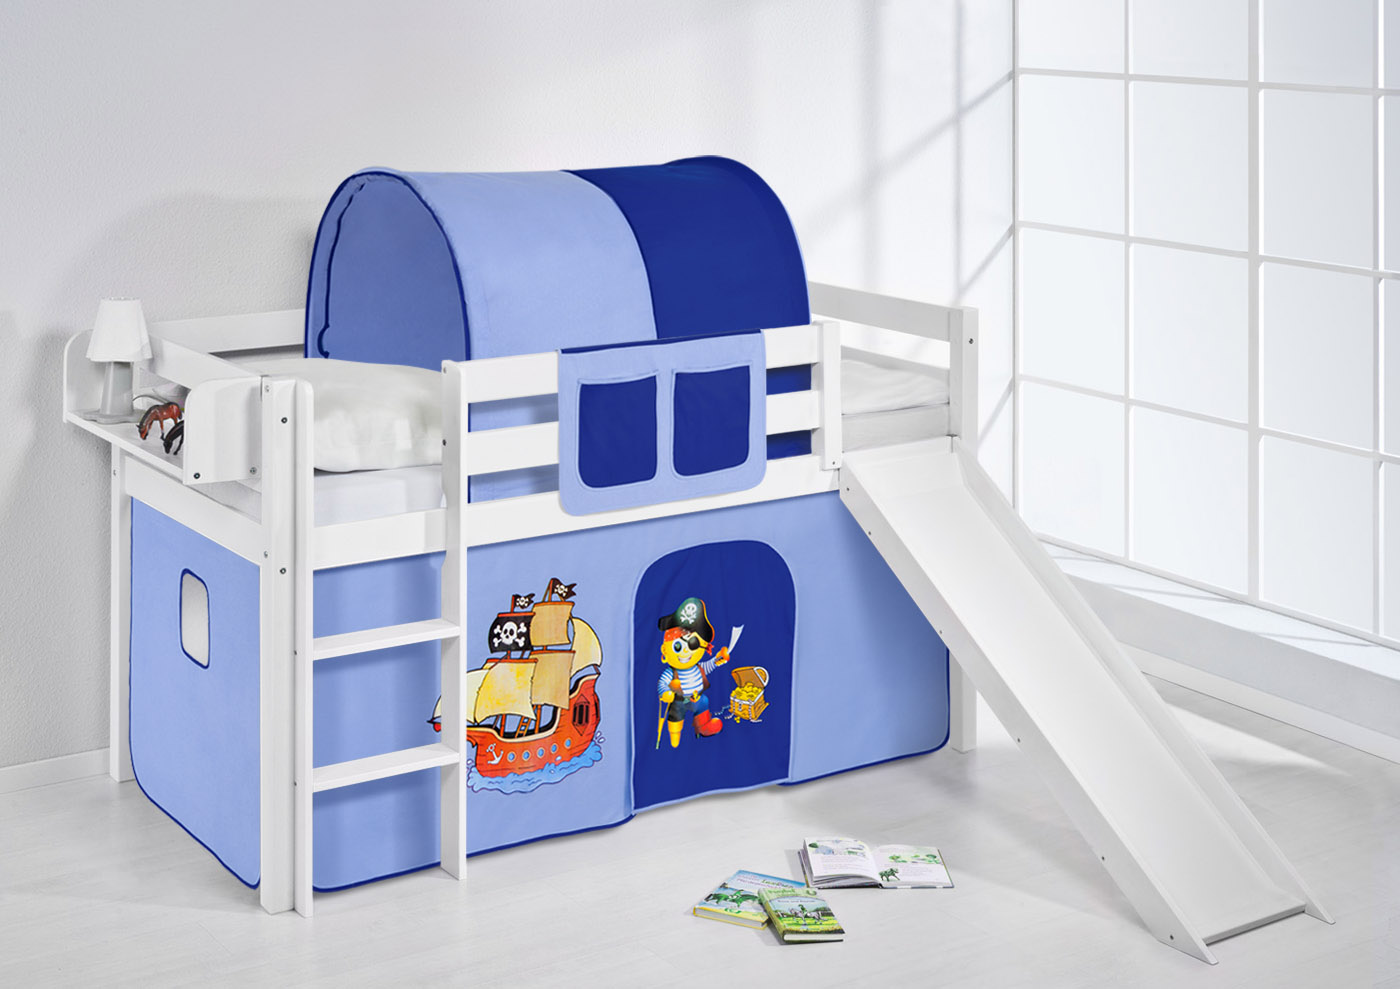 spielbett hochbett kinderbett kinder bett jelle mit rutsche 190x90 cm vorhang ebay. Black Bedroom Furniture Sets. Home Design Ideas